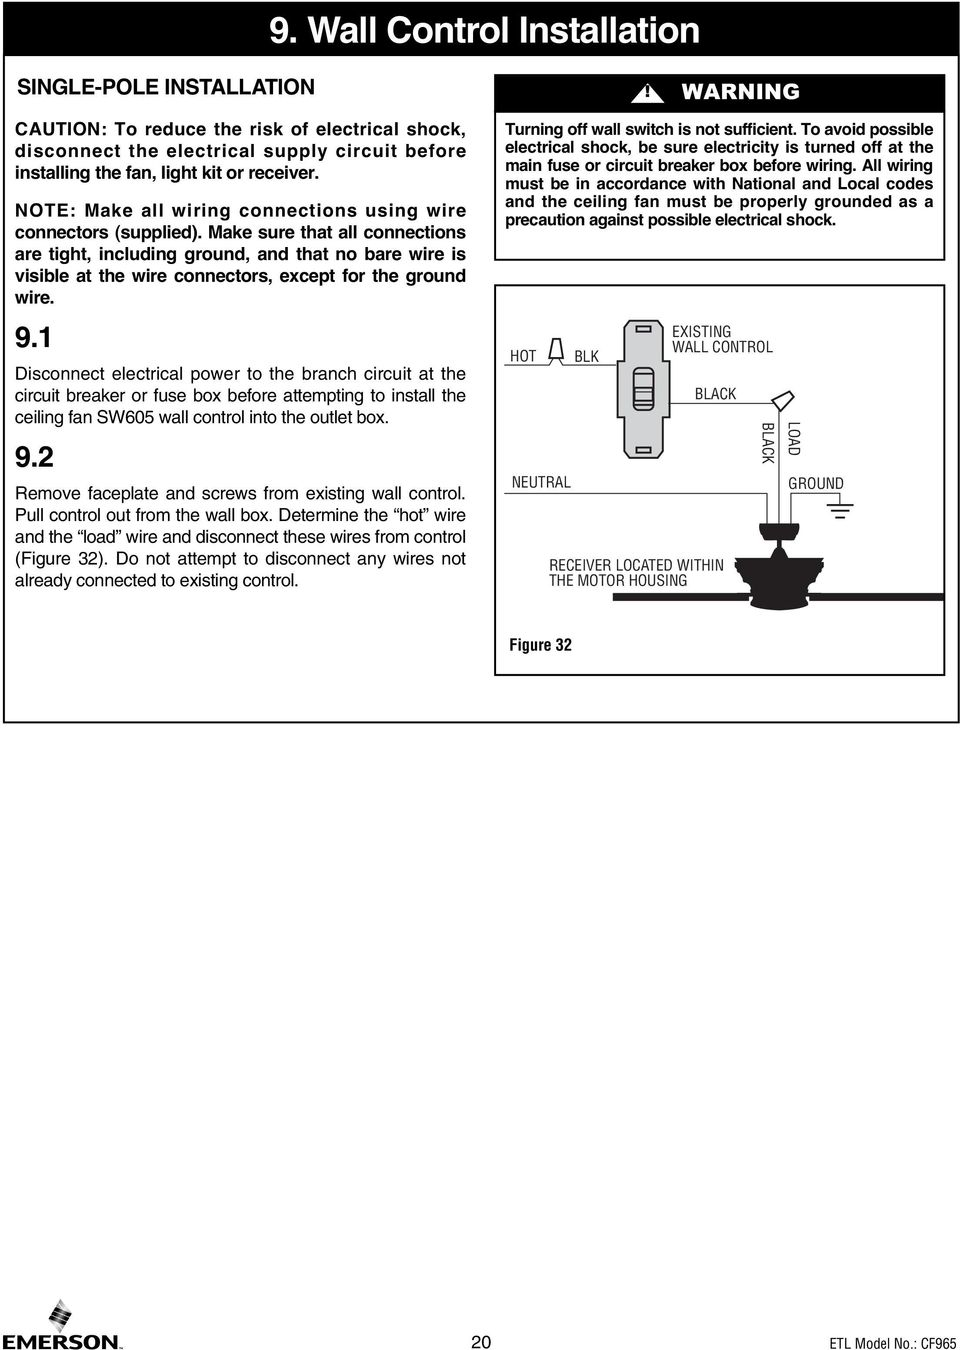 Read And Save These Instructions Portland 54 Ceiling Fan Owners Fuse Box Ground Wire Make Sure That All Connections Are Tight Including No Bare